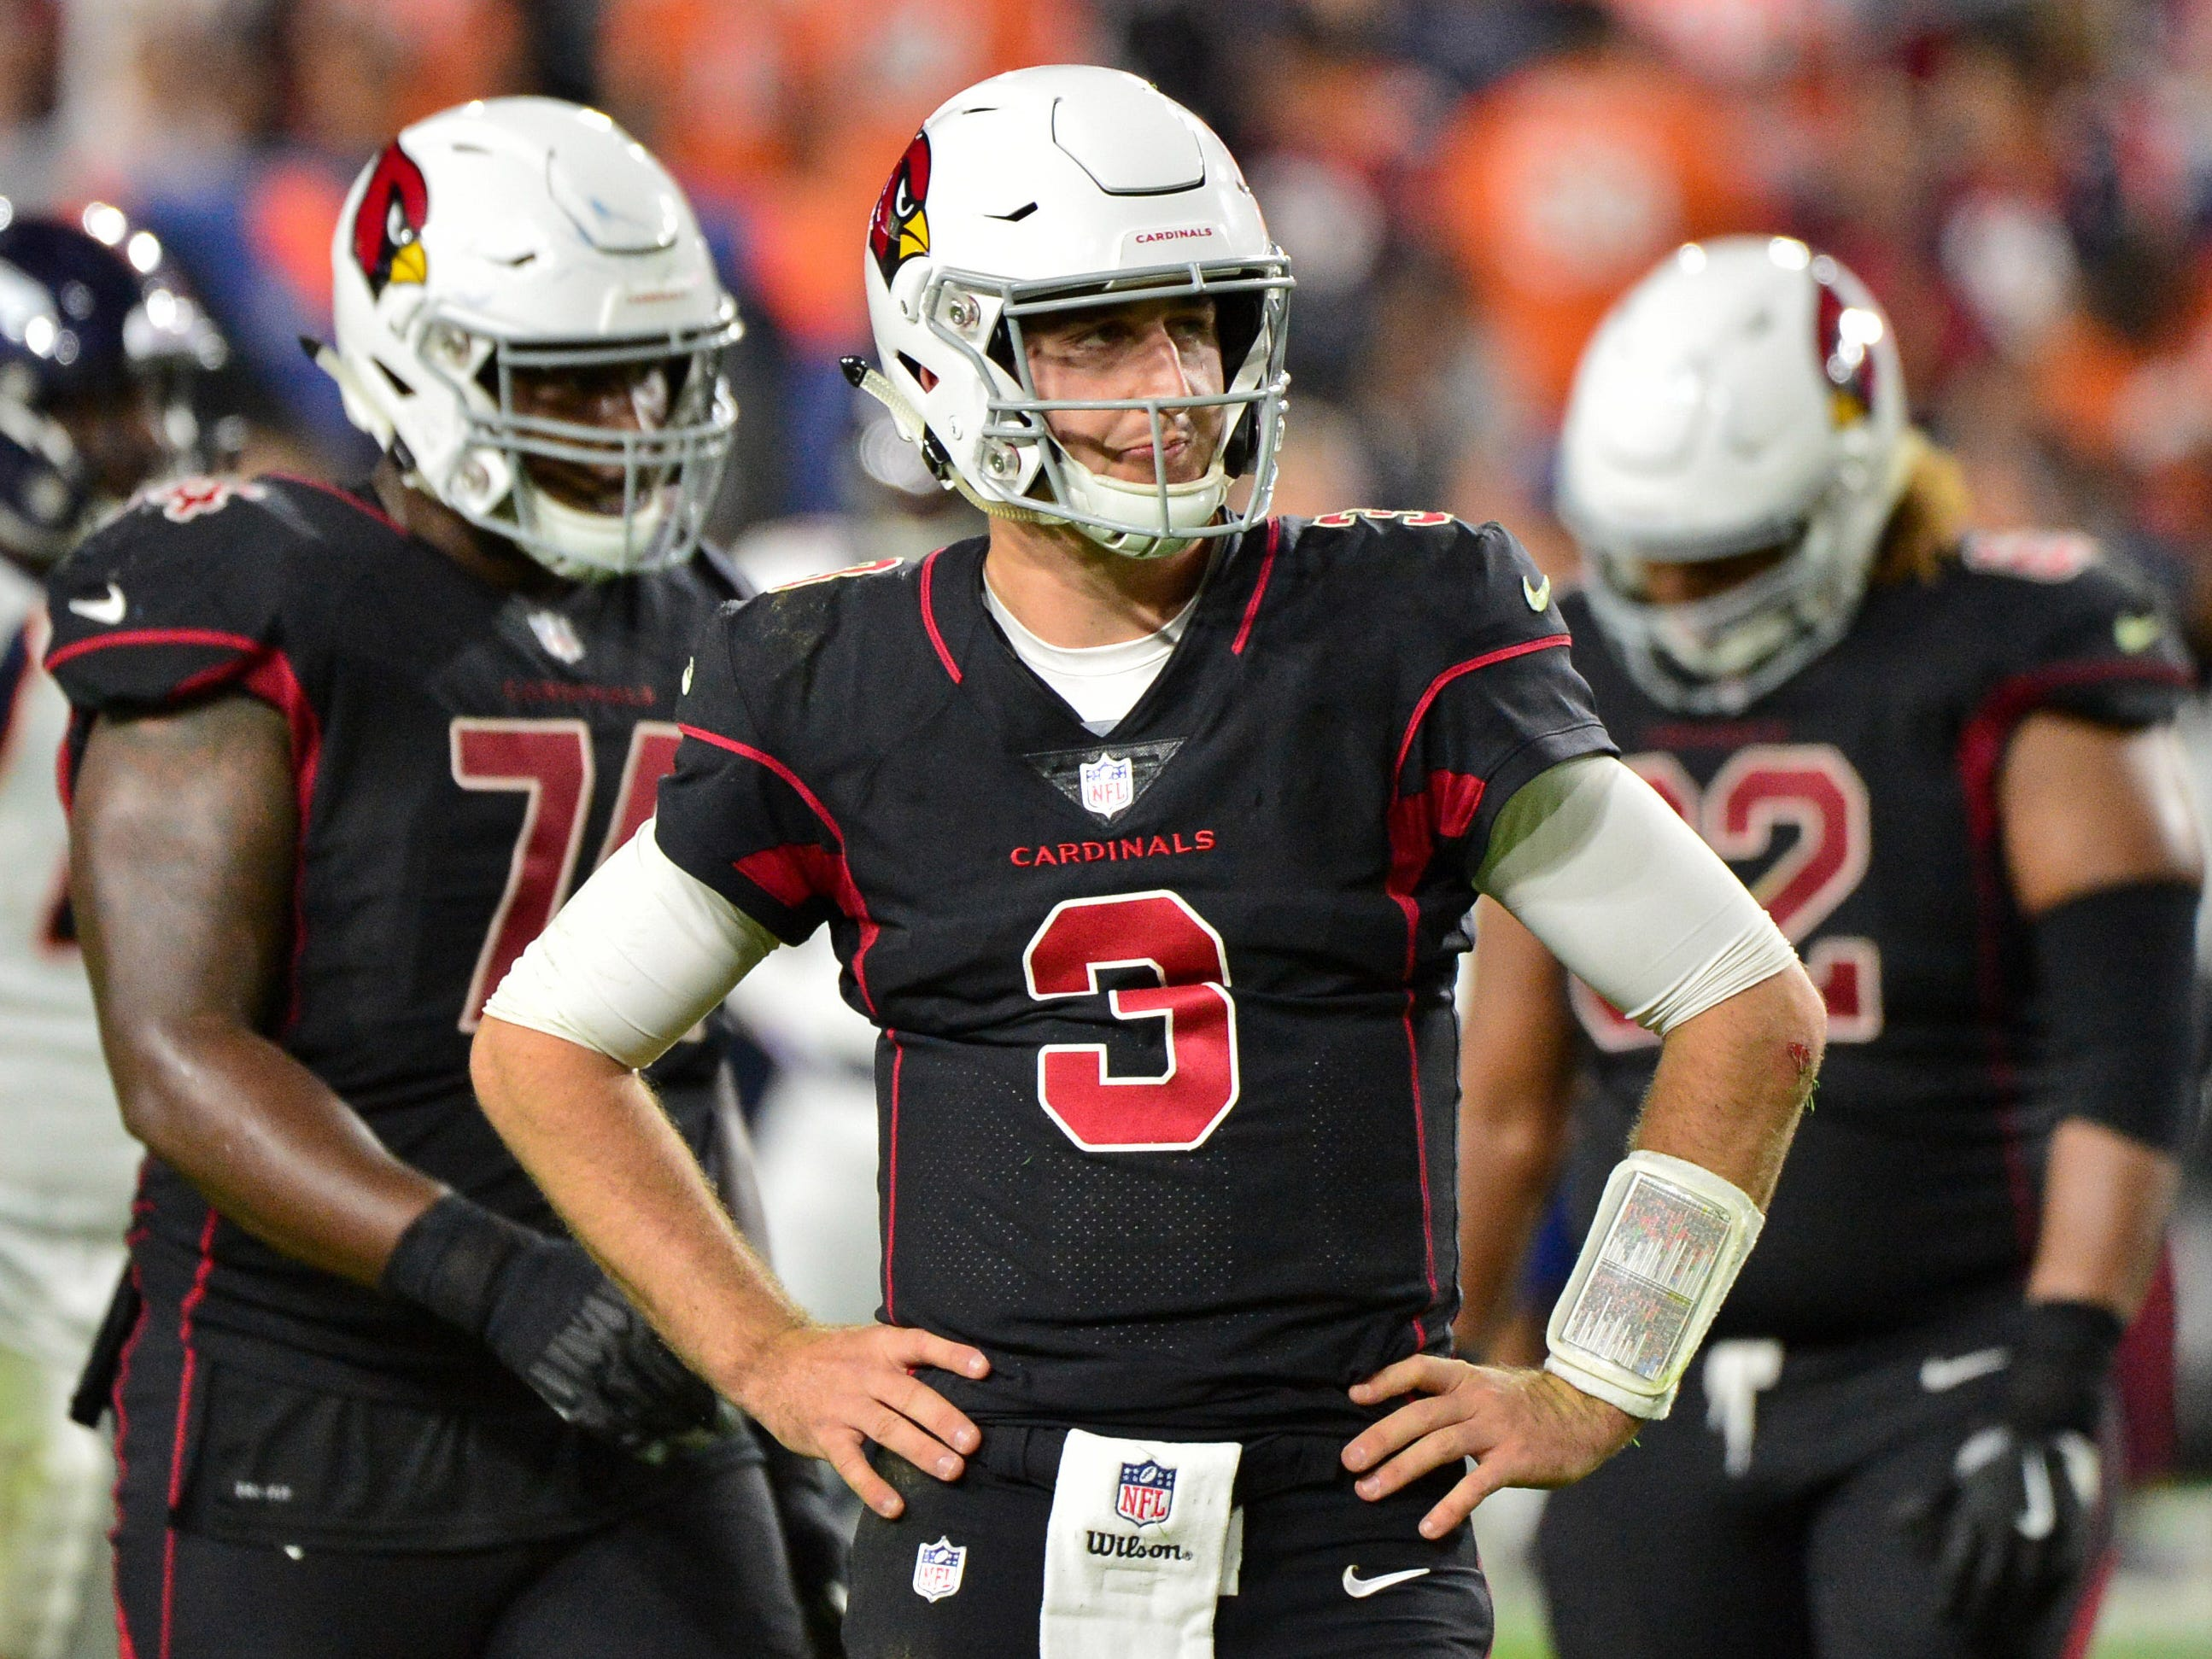 30. Cardinals (29): Welp. They're about to face the only team they've beaten, maybe the only team they'll defeat all year. Come on down, San Fran.